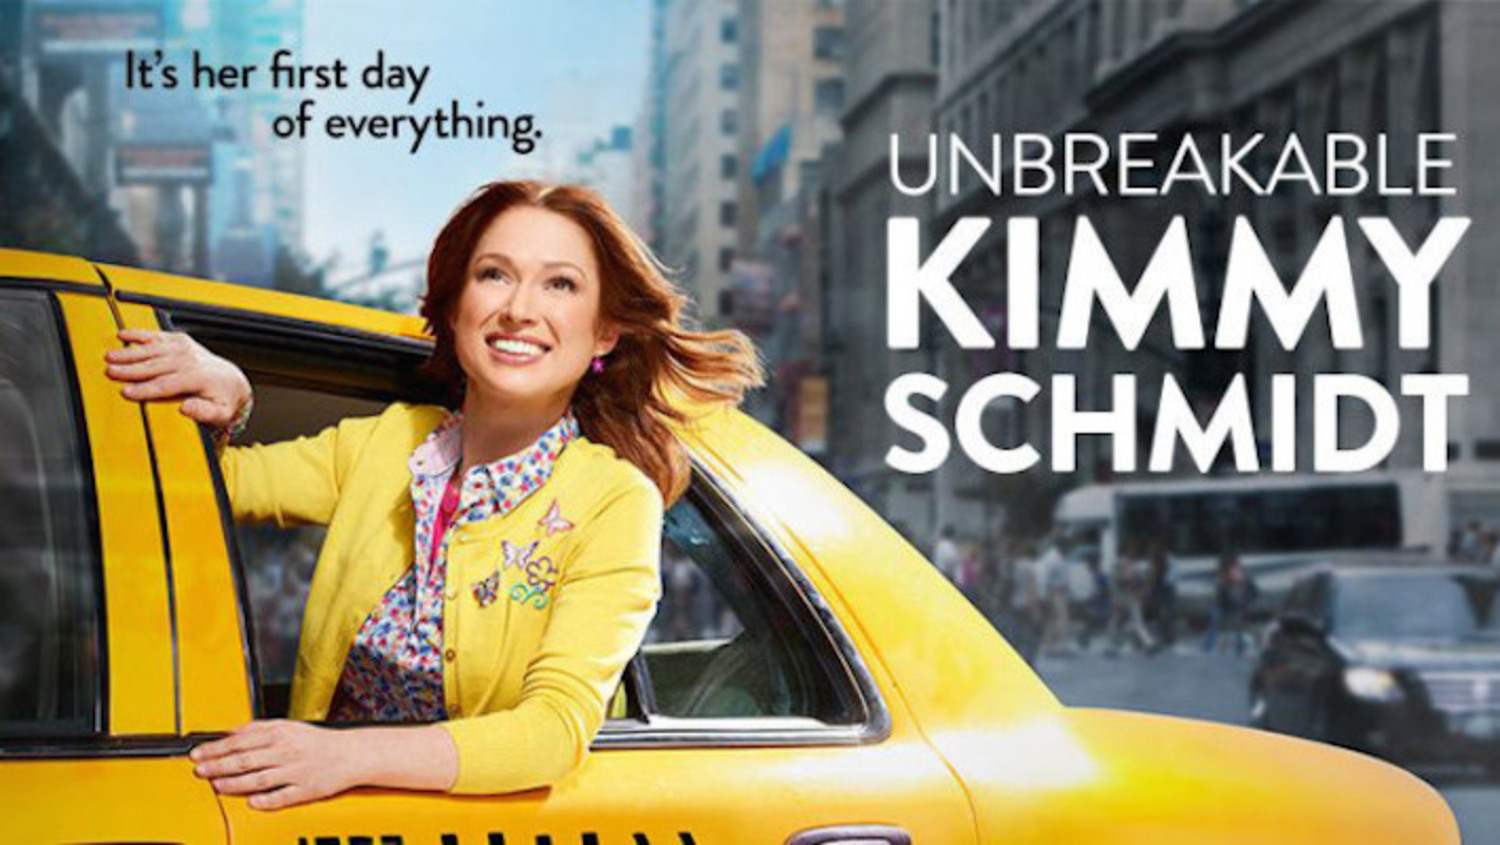 """Meet Ellie Kemper's UNBREAKABLE KIMMY SCHMIDT In Trailer For New Netflix Series 